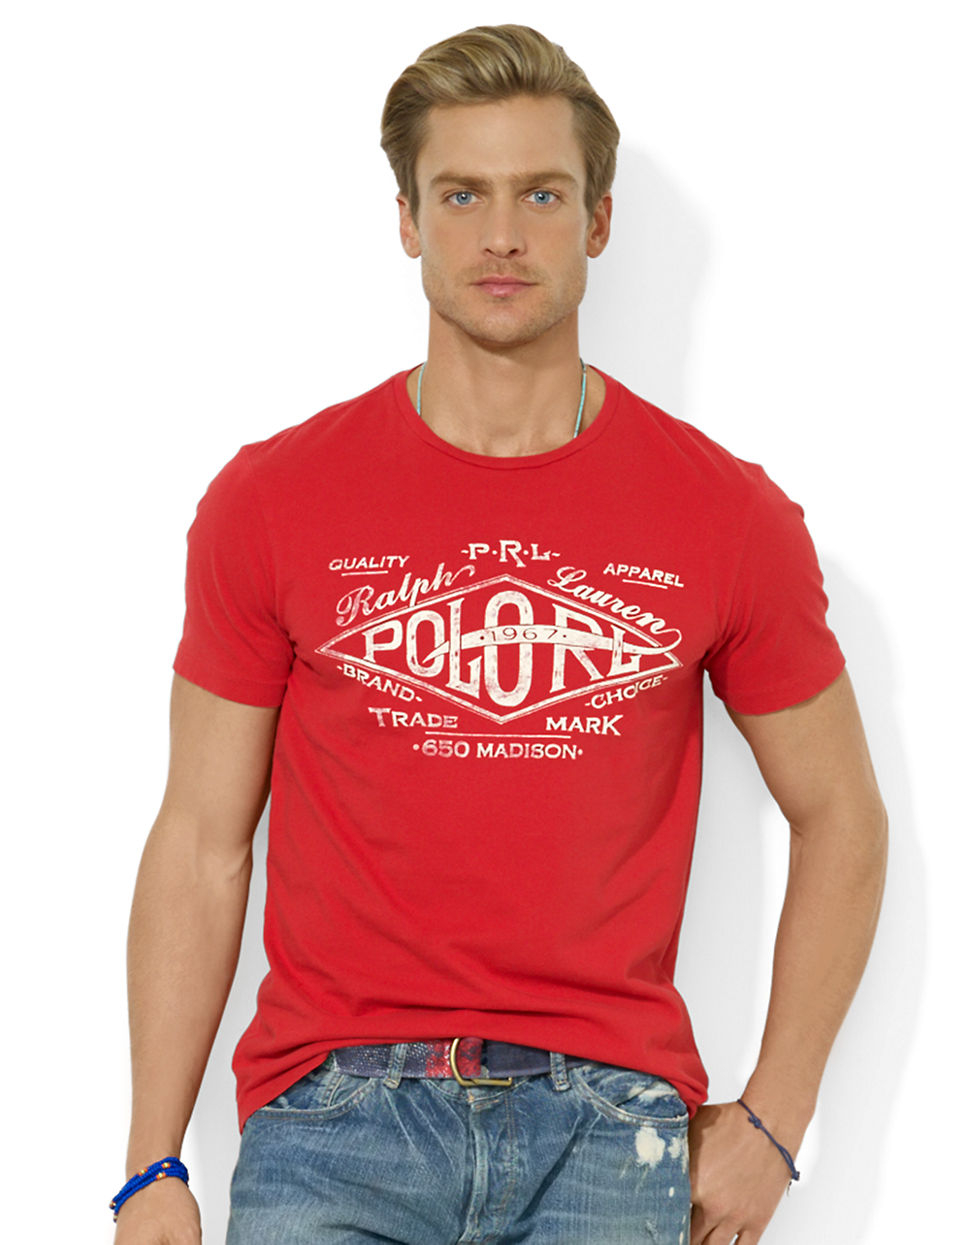 polo ralph lauren classic fit graphic jersey t shirt in. Black Bedroom Furniture Sets. Home Design Ideas